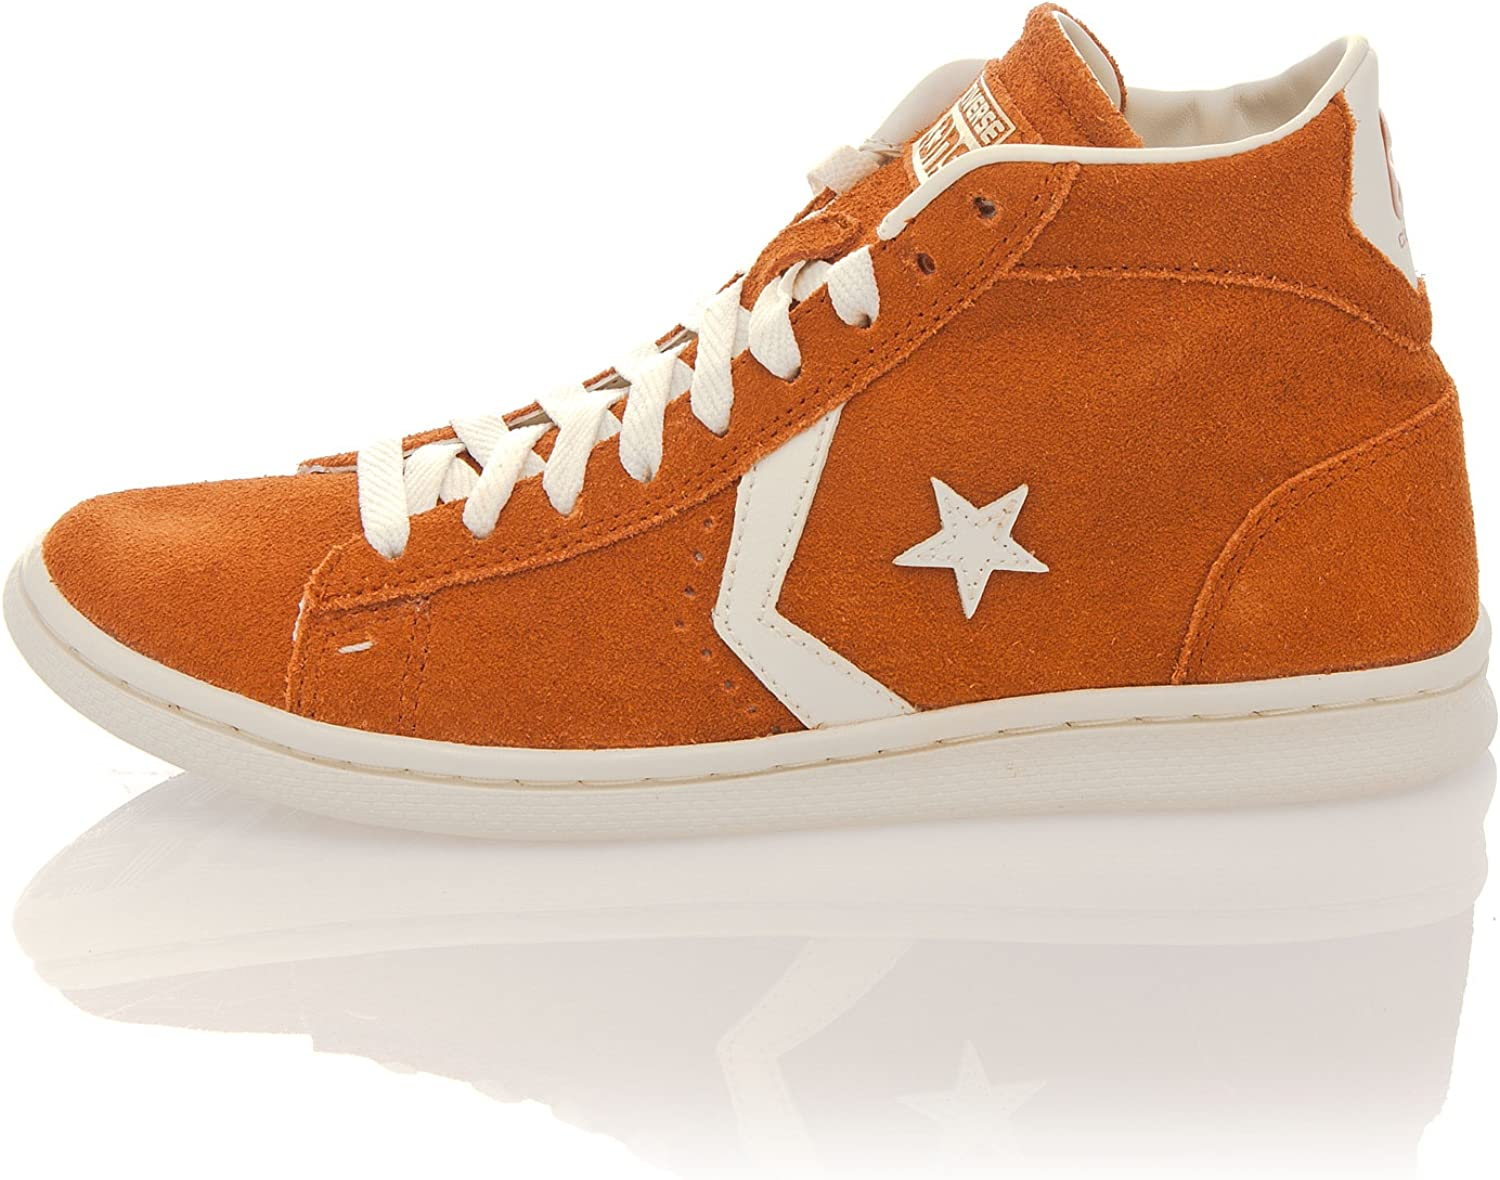 Converse Hightop Turnschuhe Pro Leather Lp Mid Suede